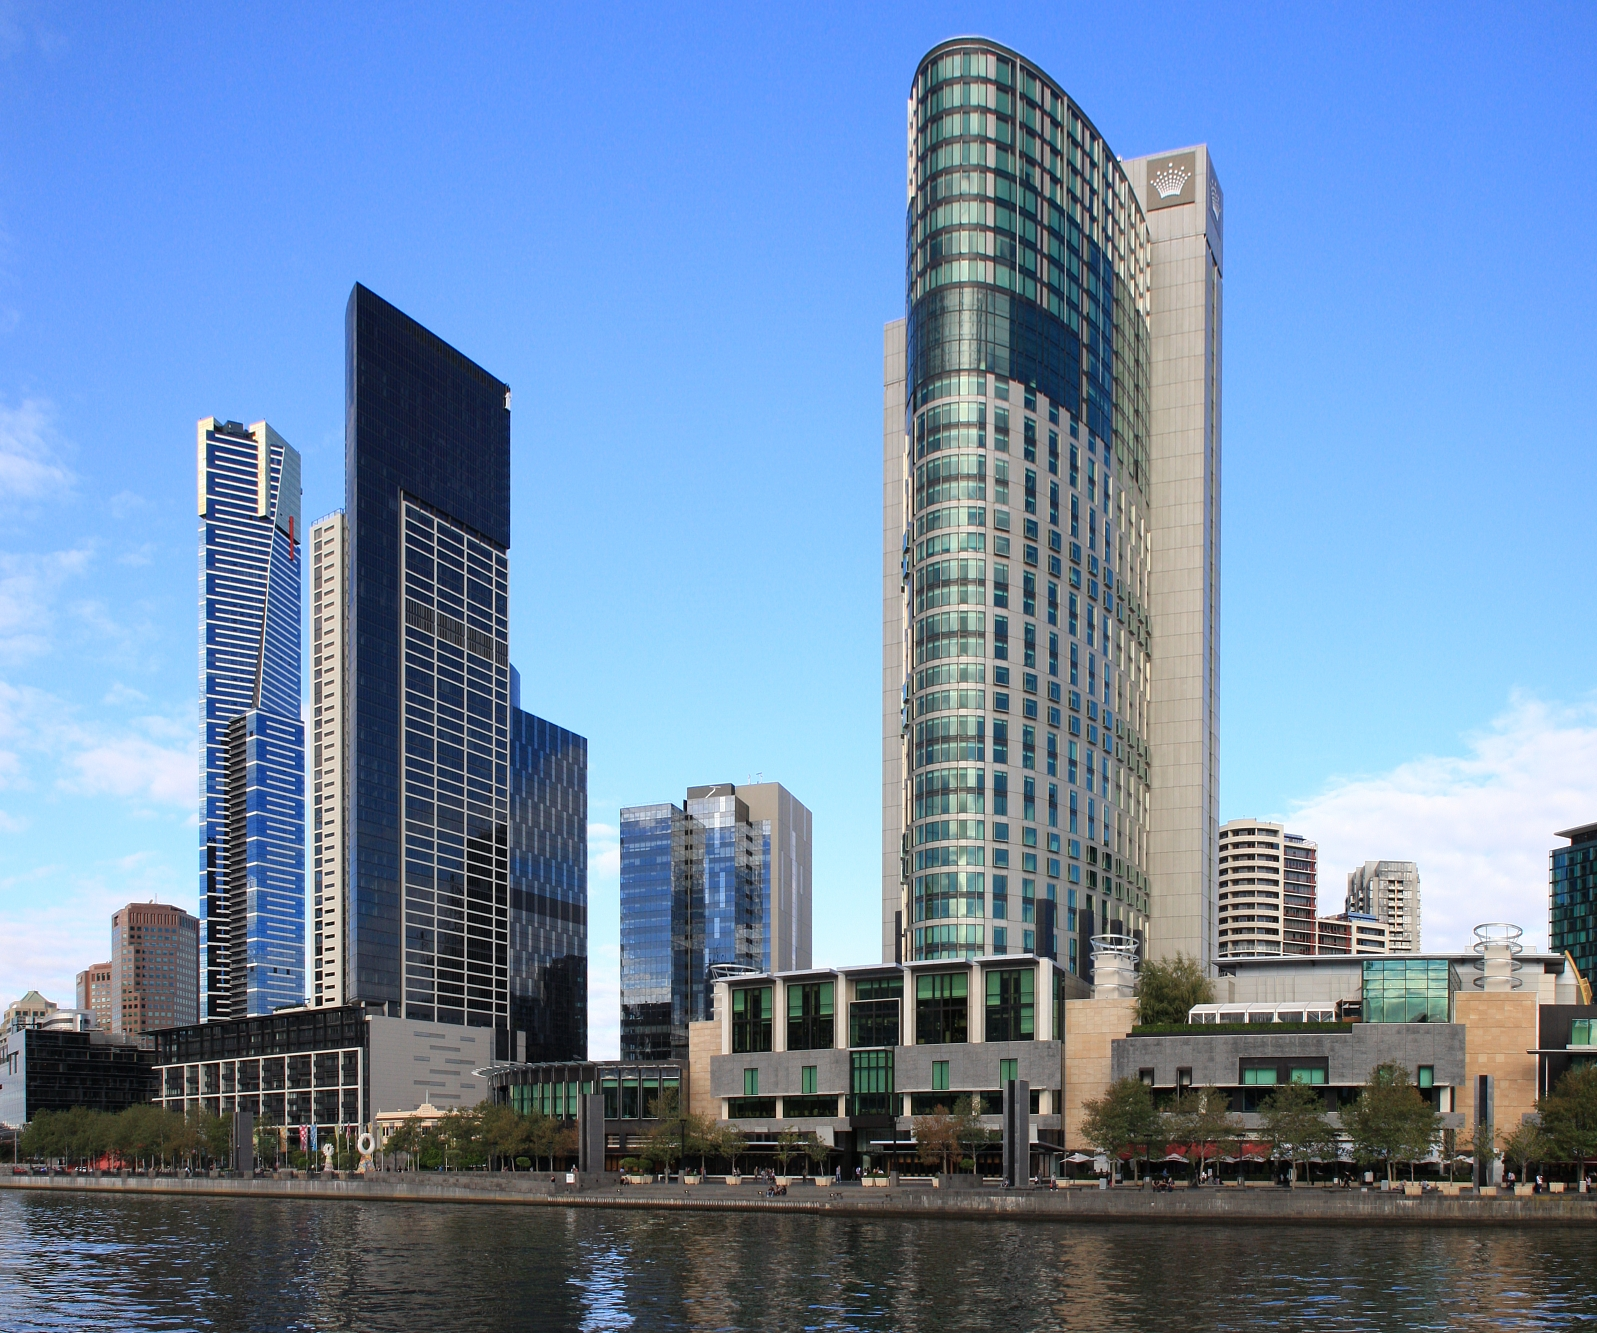 Crown casino melbourne accommodation 13